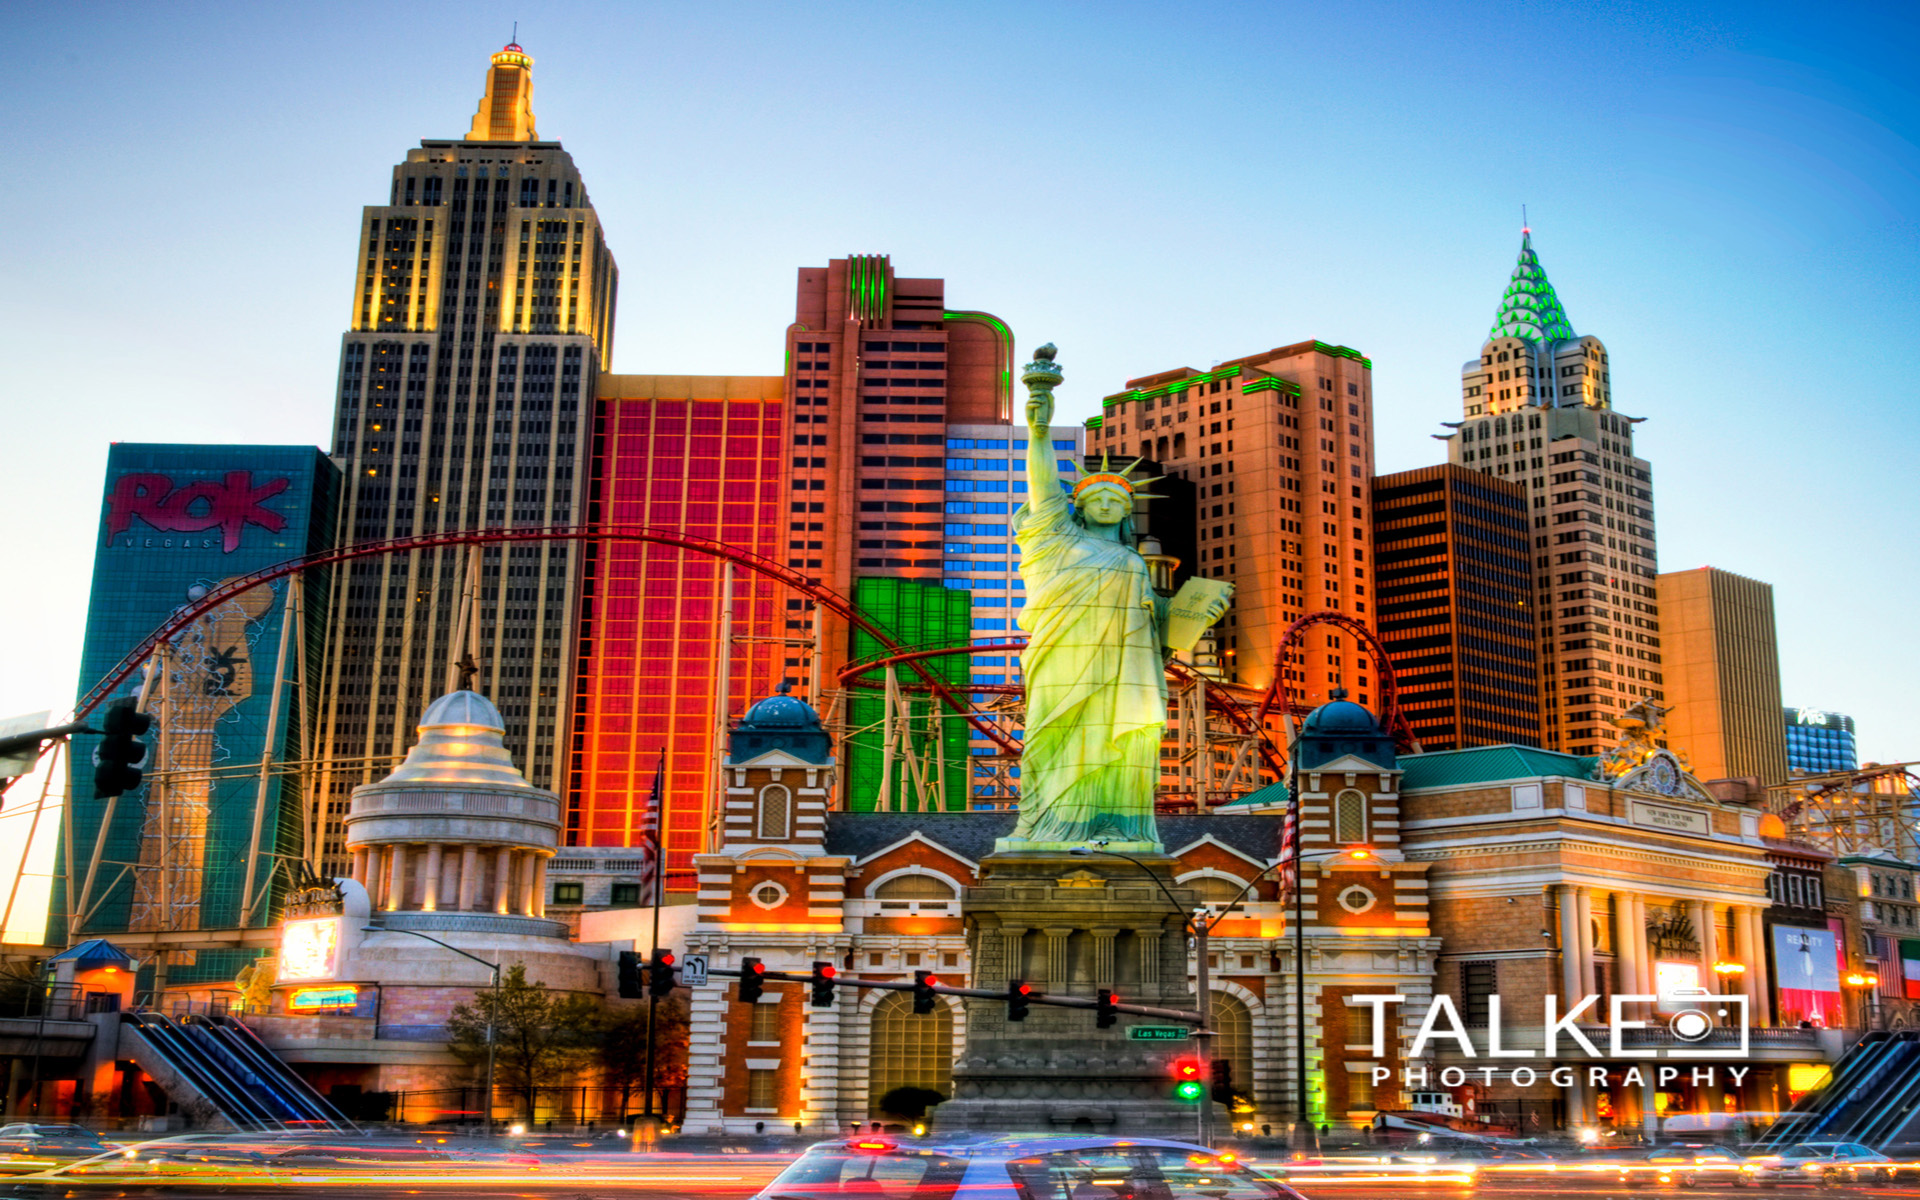 las vegas nevada wallpaper - hd wallpaper